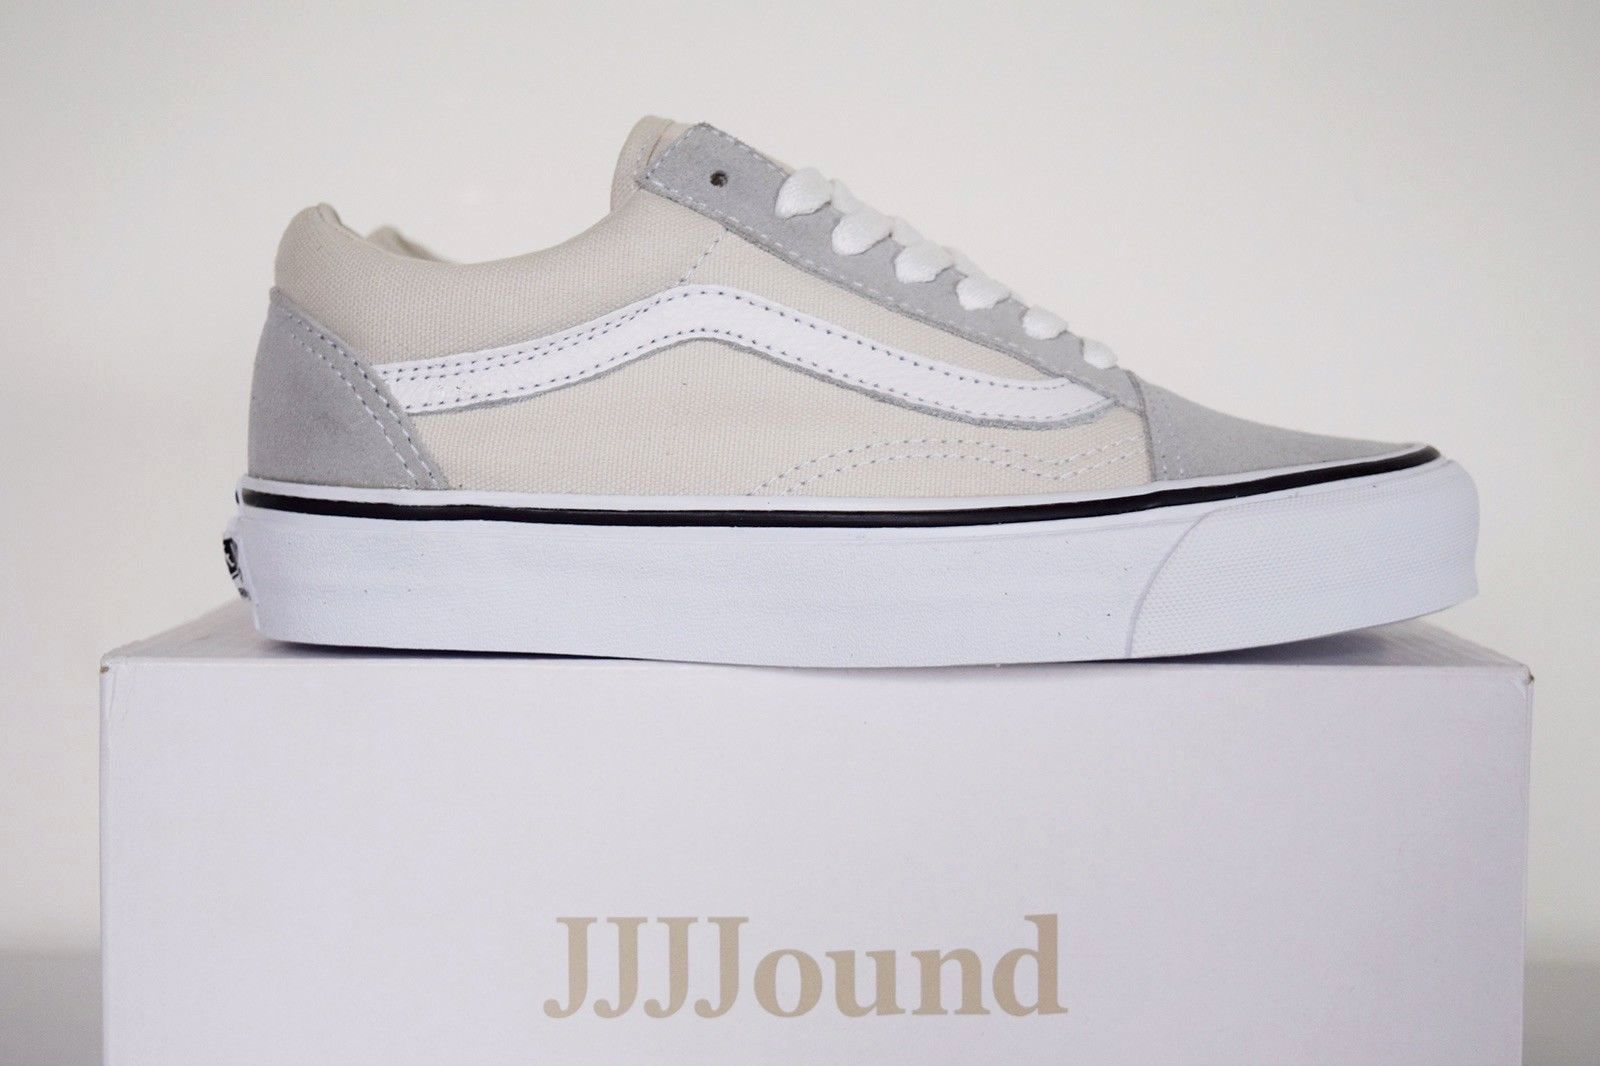 Vans x JJJJound Old Skool